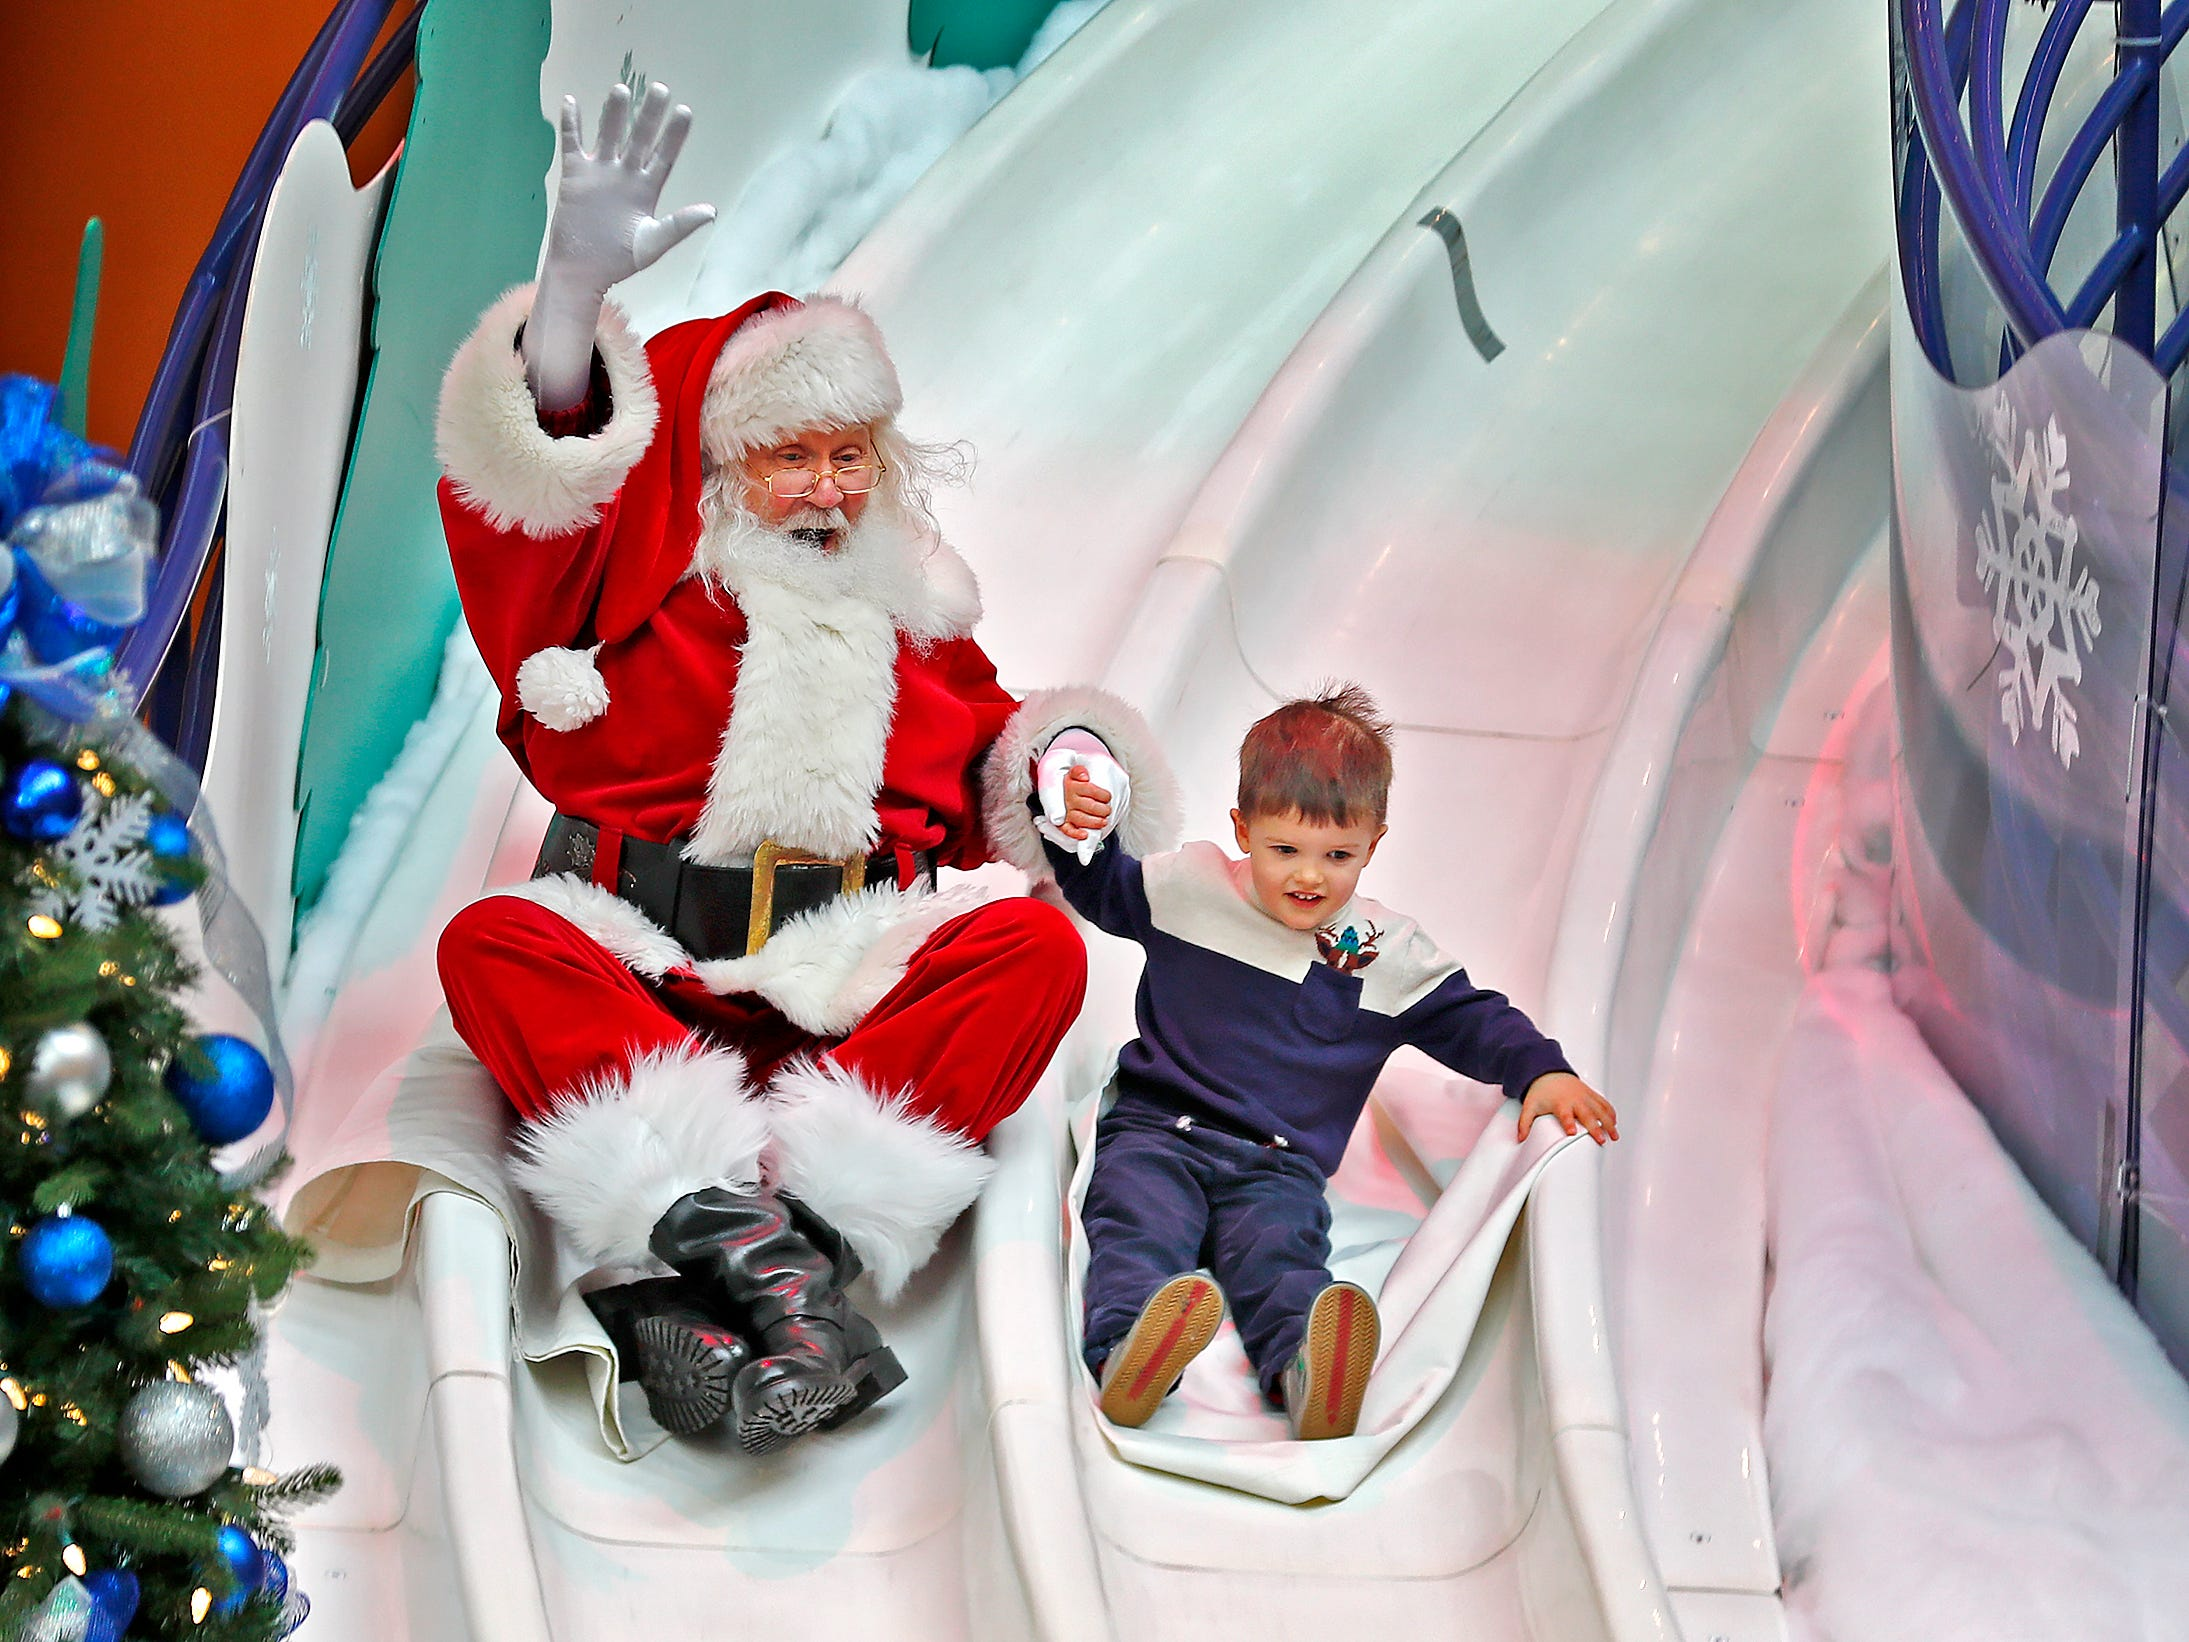 Santa and four-year-old Henri Duval slide down the Yule Slide at the Children's Museum of Indianapolis, Friday, Nov. 23, 2018, marking the opening of Jolly Days Winter Wonderland at the museum.